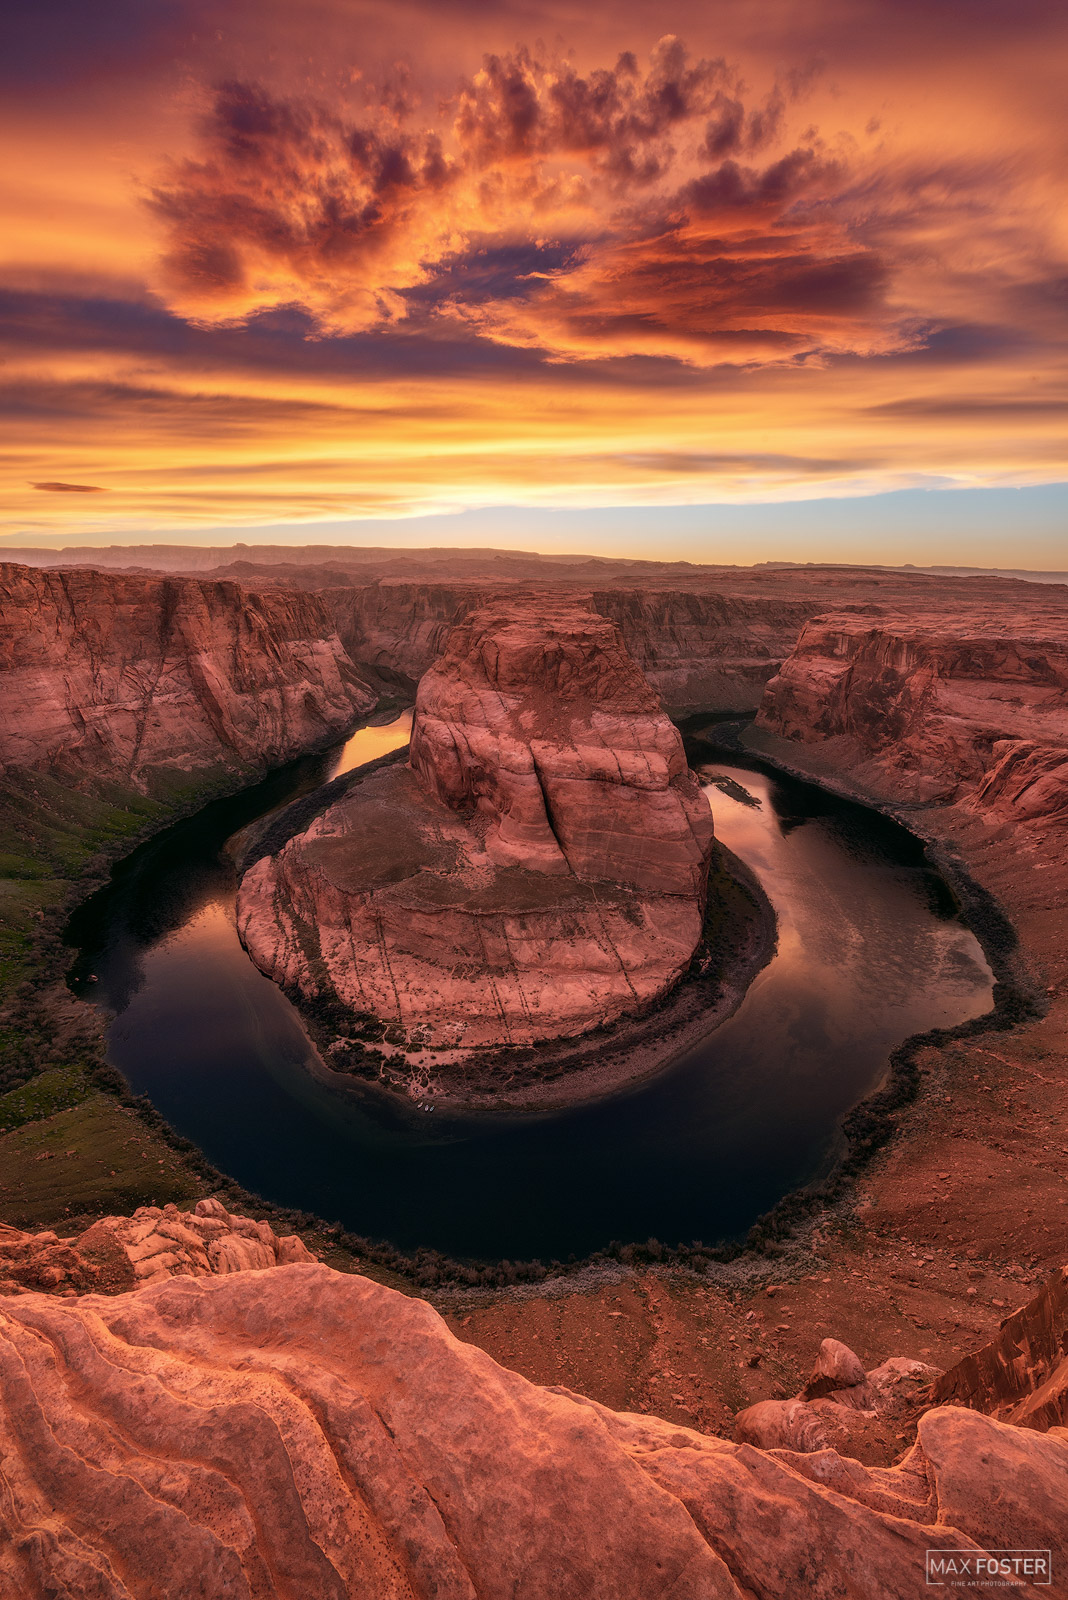 Horseshoe Bend, Page, Arizona, Colorado River, Glen Canyon Dam, Lake Powell, Glen Canyon National Recreation Area, Halo, photo